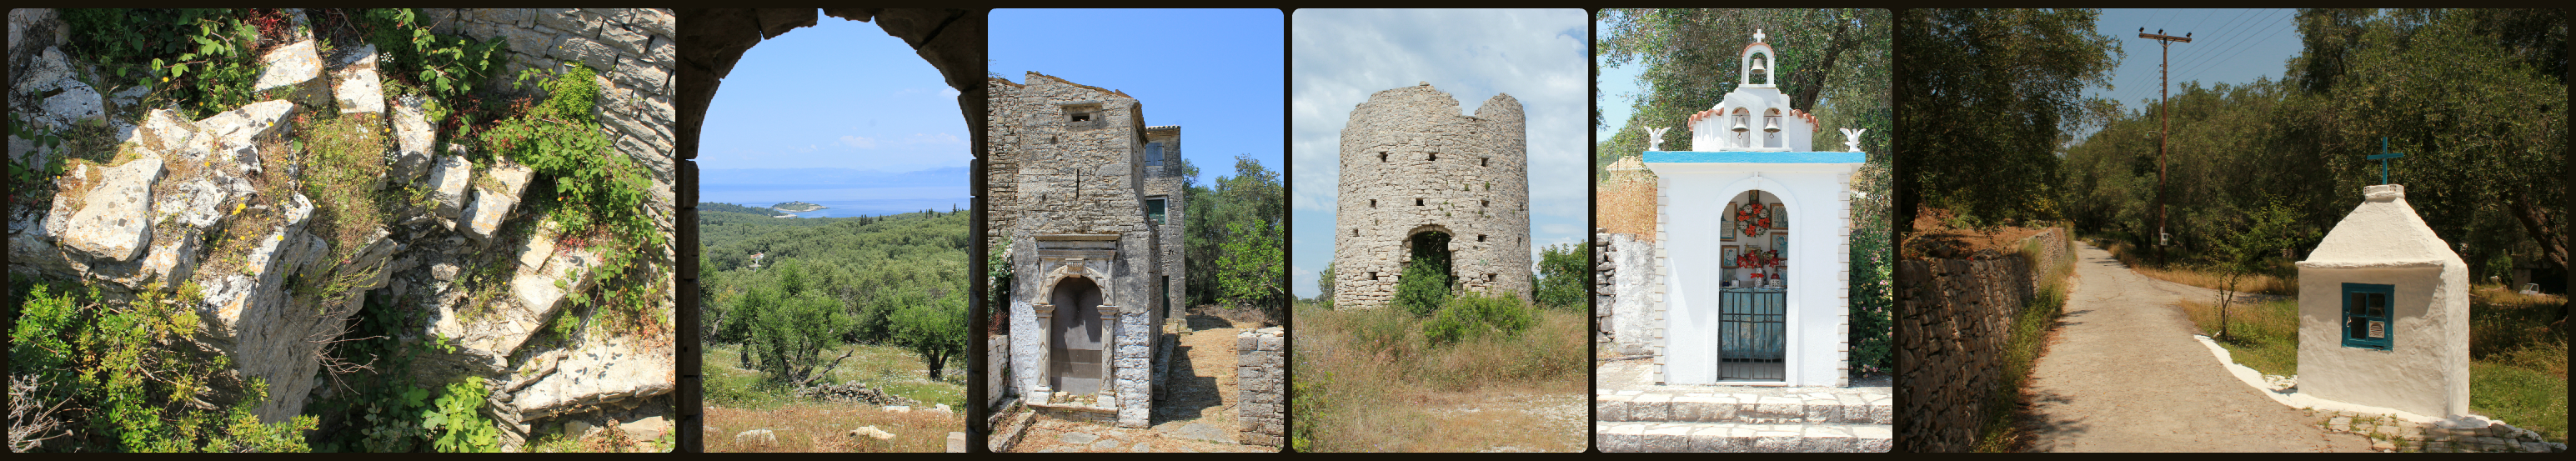 An elusive windmill, crumbling Venetian manor, and roadside shrines